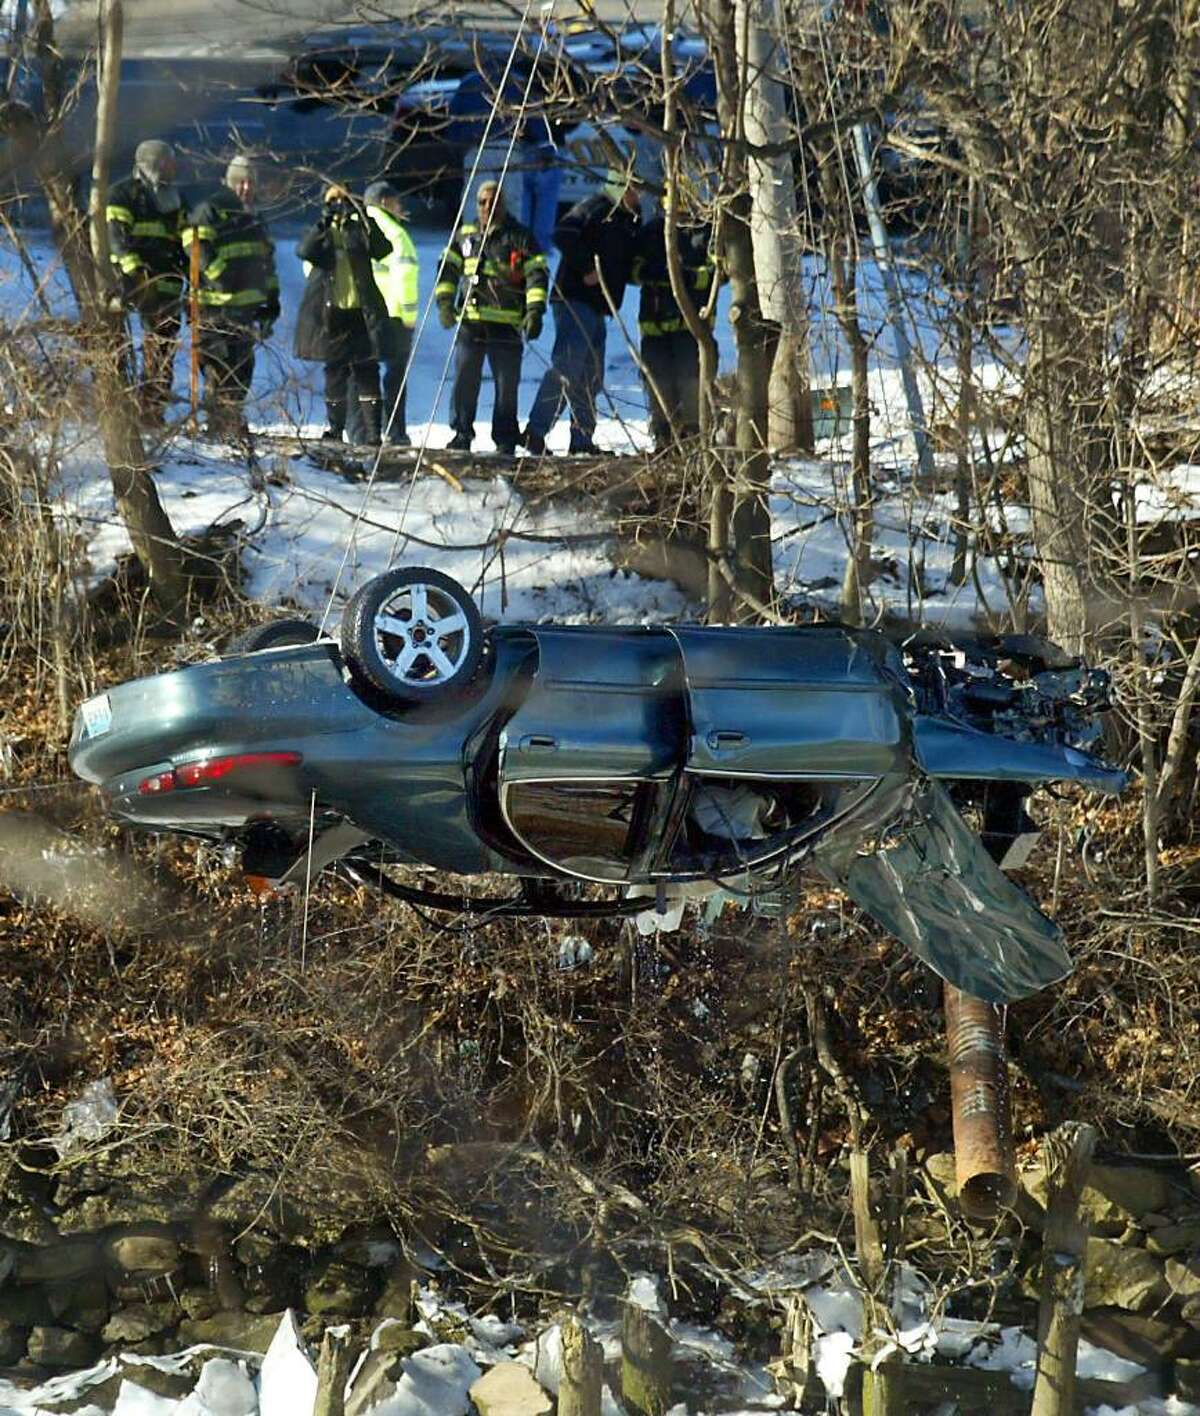 Bridgeport firefighters watch as a car is lifted from the Pequonnock River in Bridgeport. Firefighters pulled a male from the vehicle after it was discovered in the Pequonnock River near River Street and Lindley. Sunday, Jan. 10, 2010.